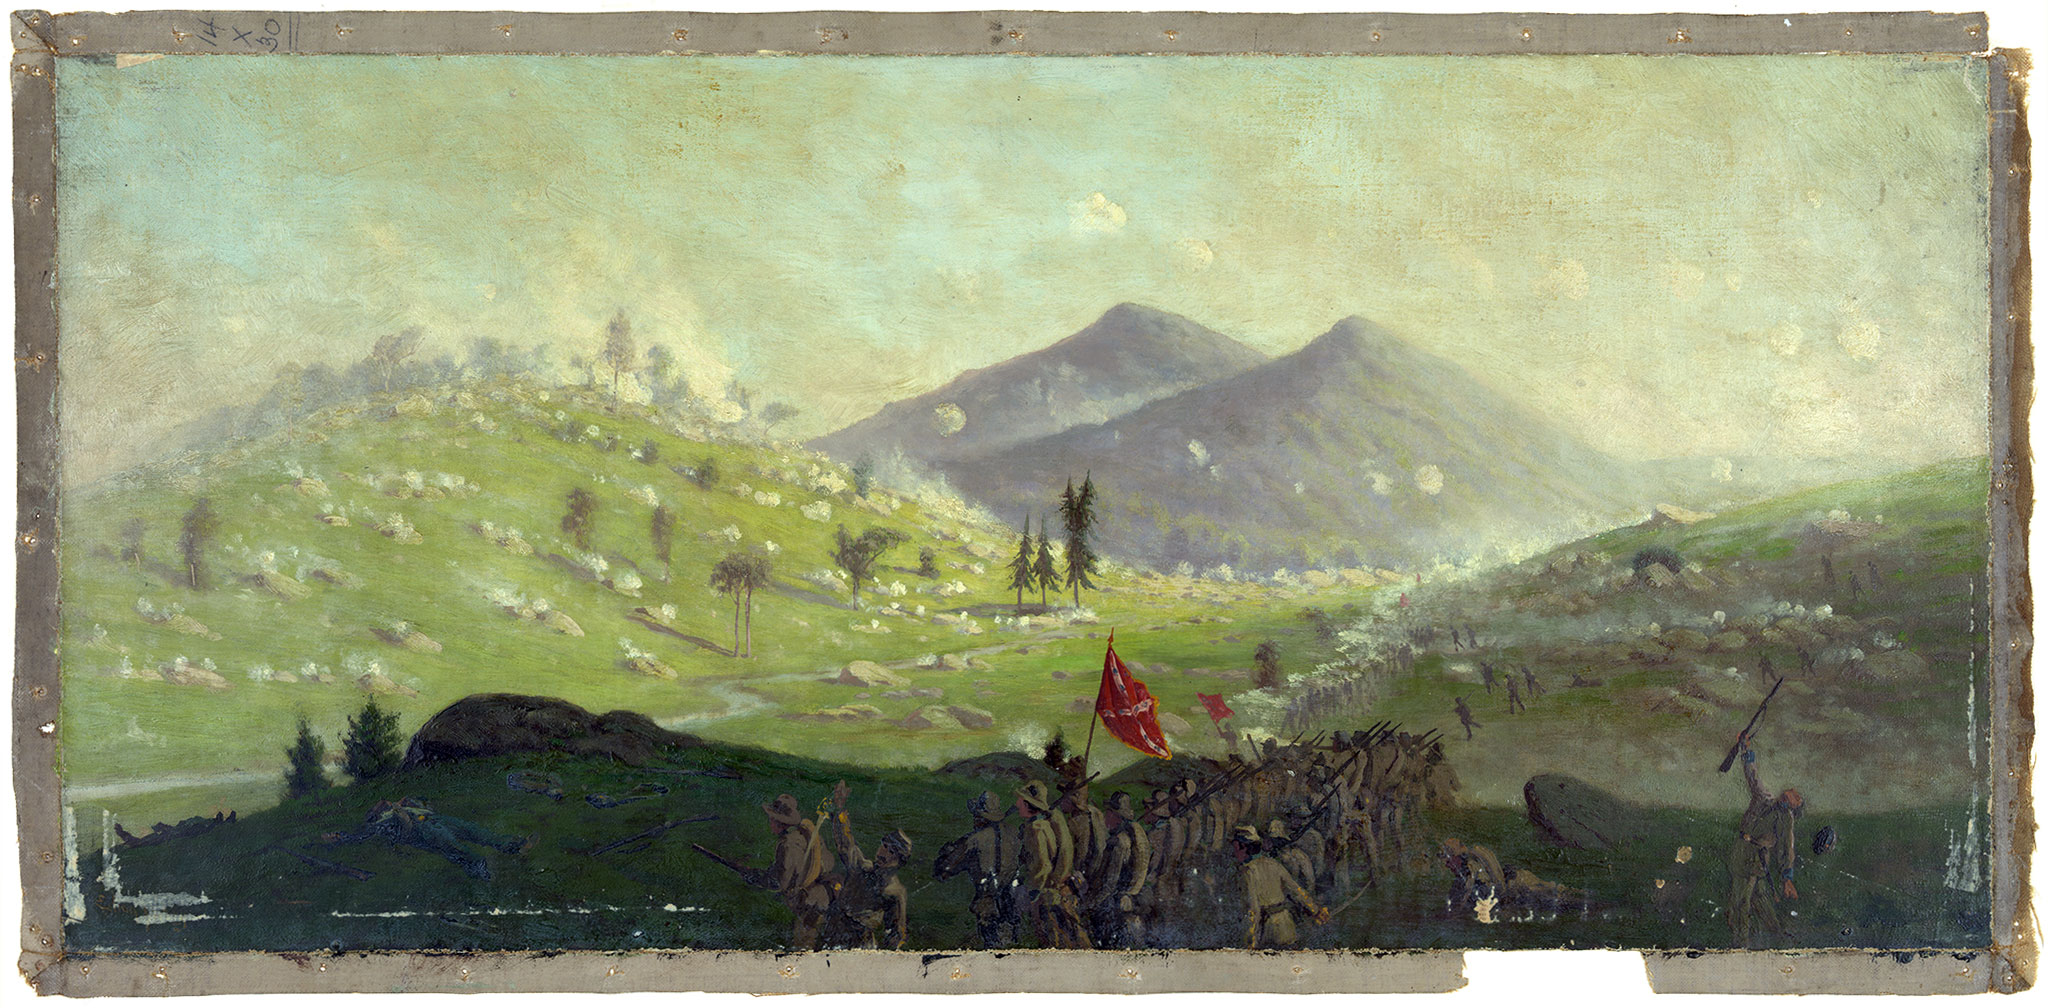 Artist Edwin Forbes depicted the action at Little Round Top in this 1865 painting. Library of Congress.